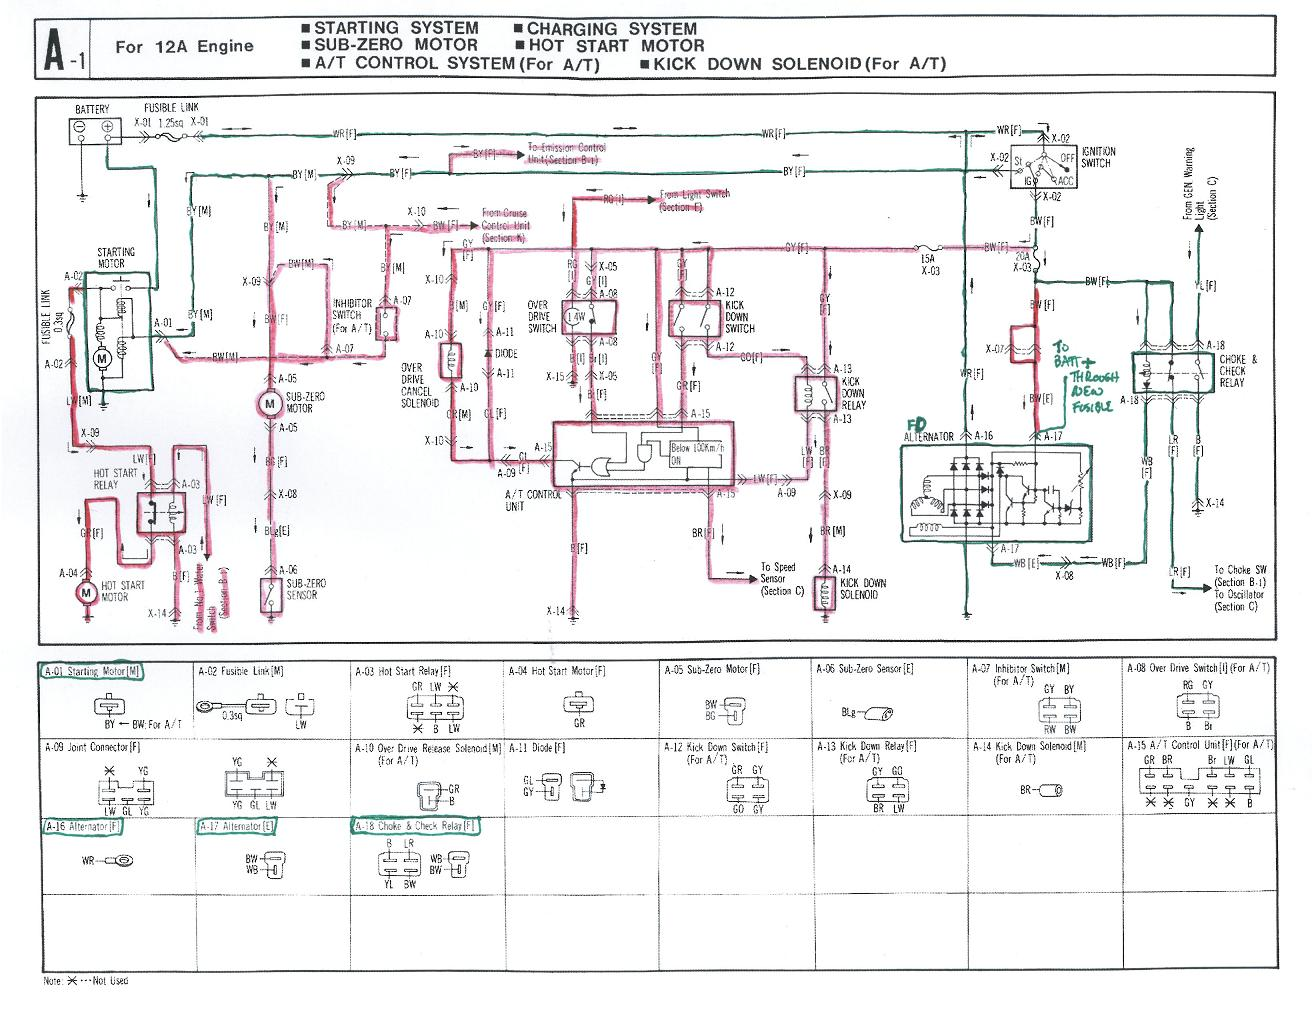 2000 sterling fuse box mw 9932  peterbilt wiring diagram 2001 wiring diagram  mw 9932  peterbilt wiring diagram 2001